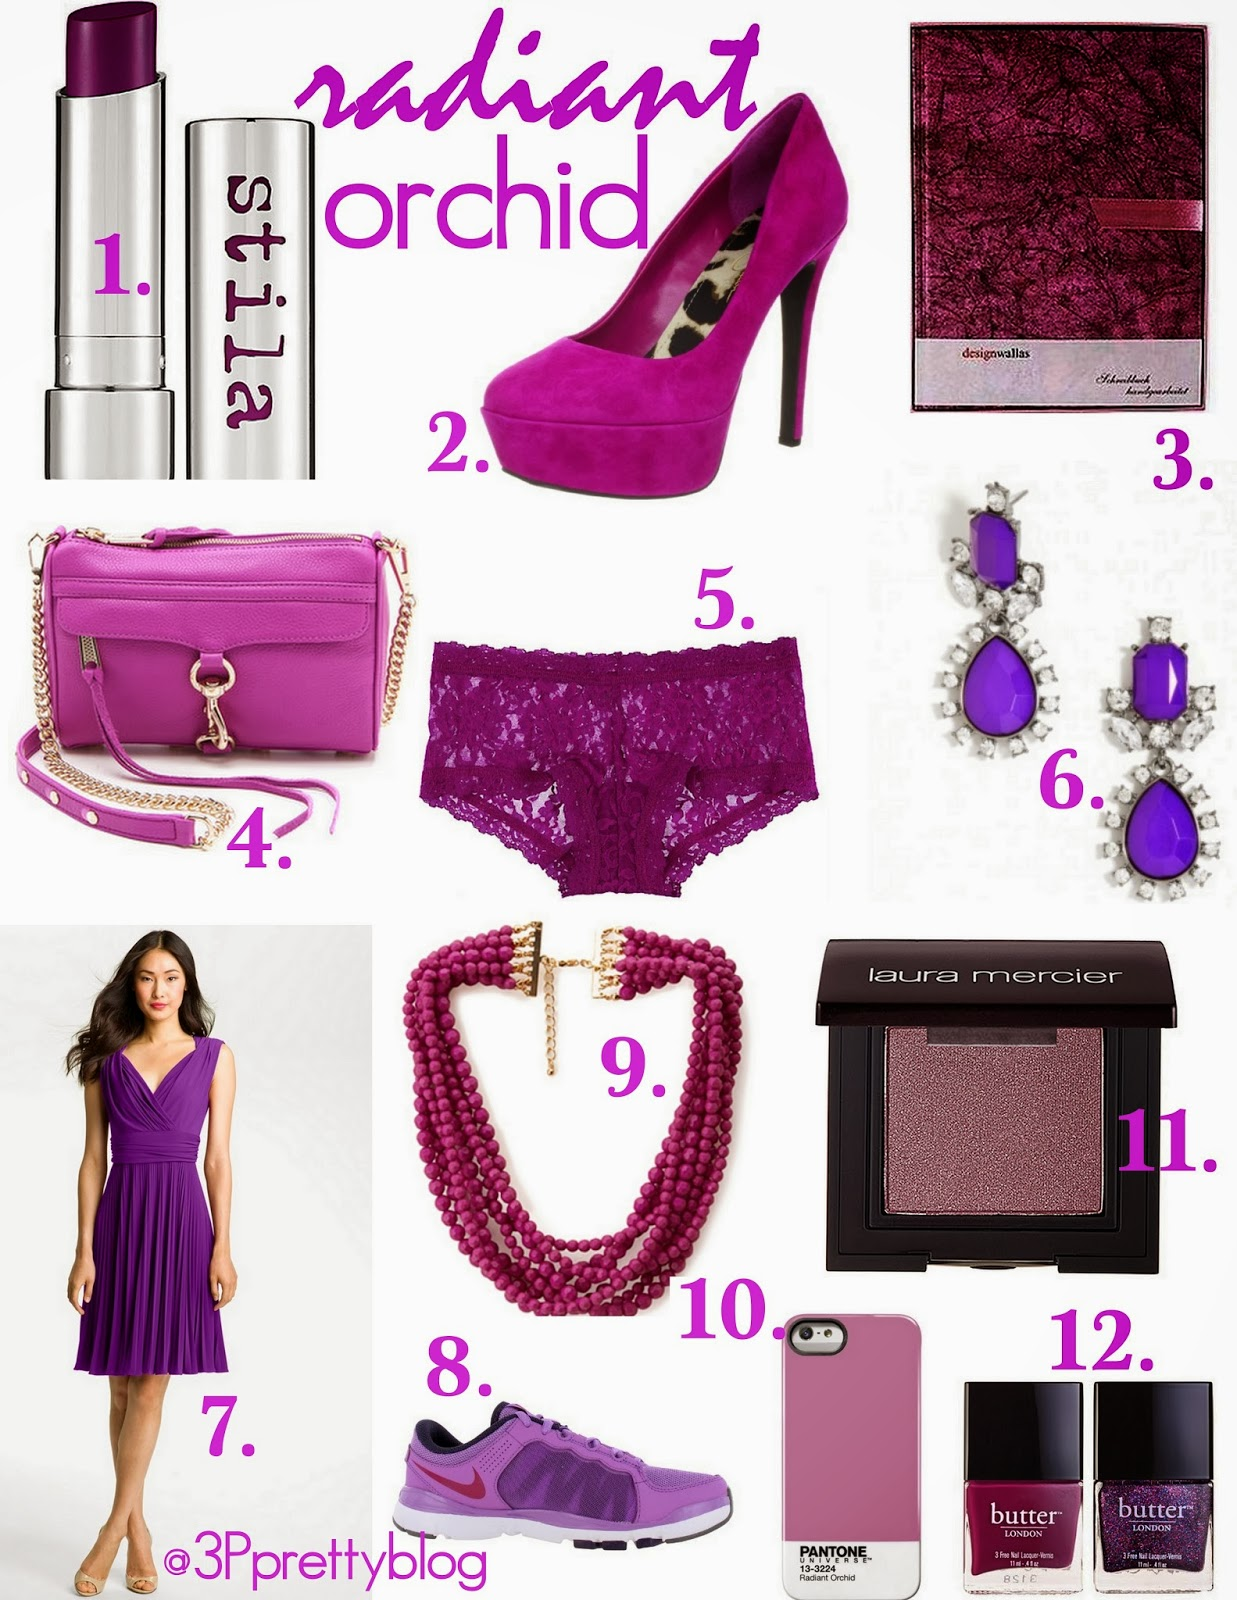 Pantone Color Of The Year 2014 Radiant Orchid Has named radiant orchid